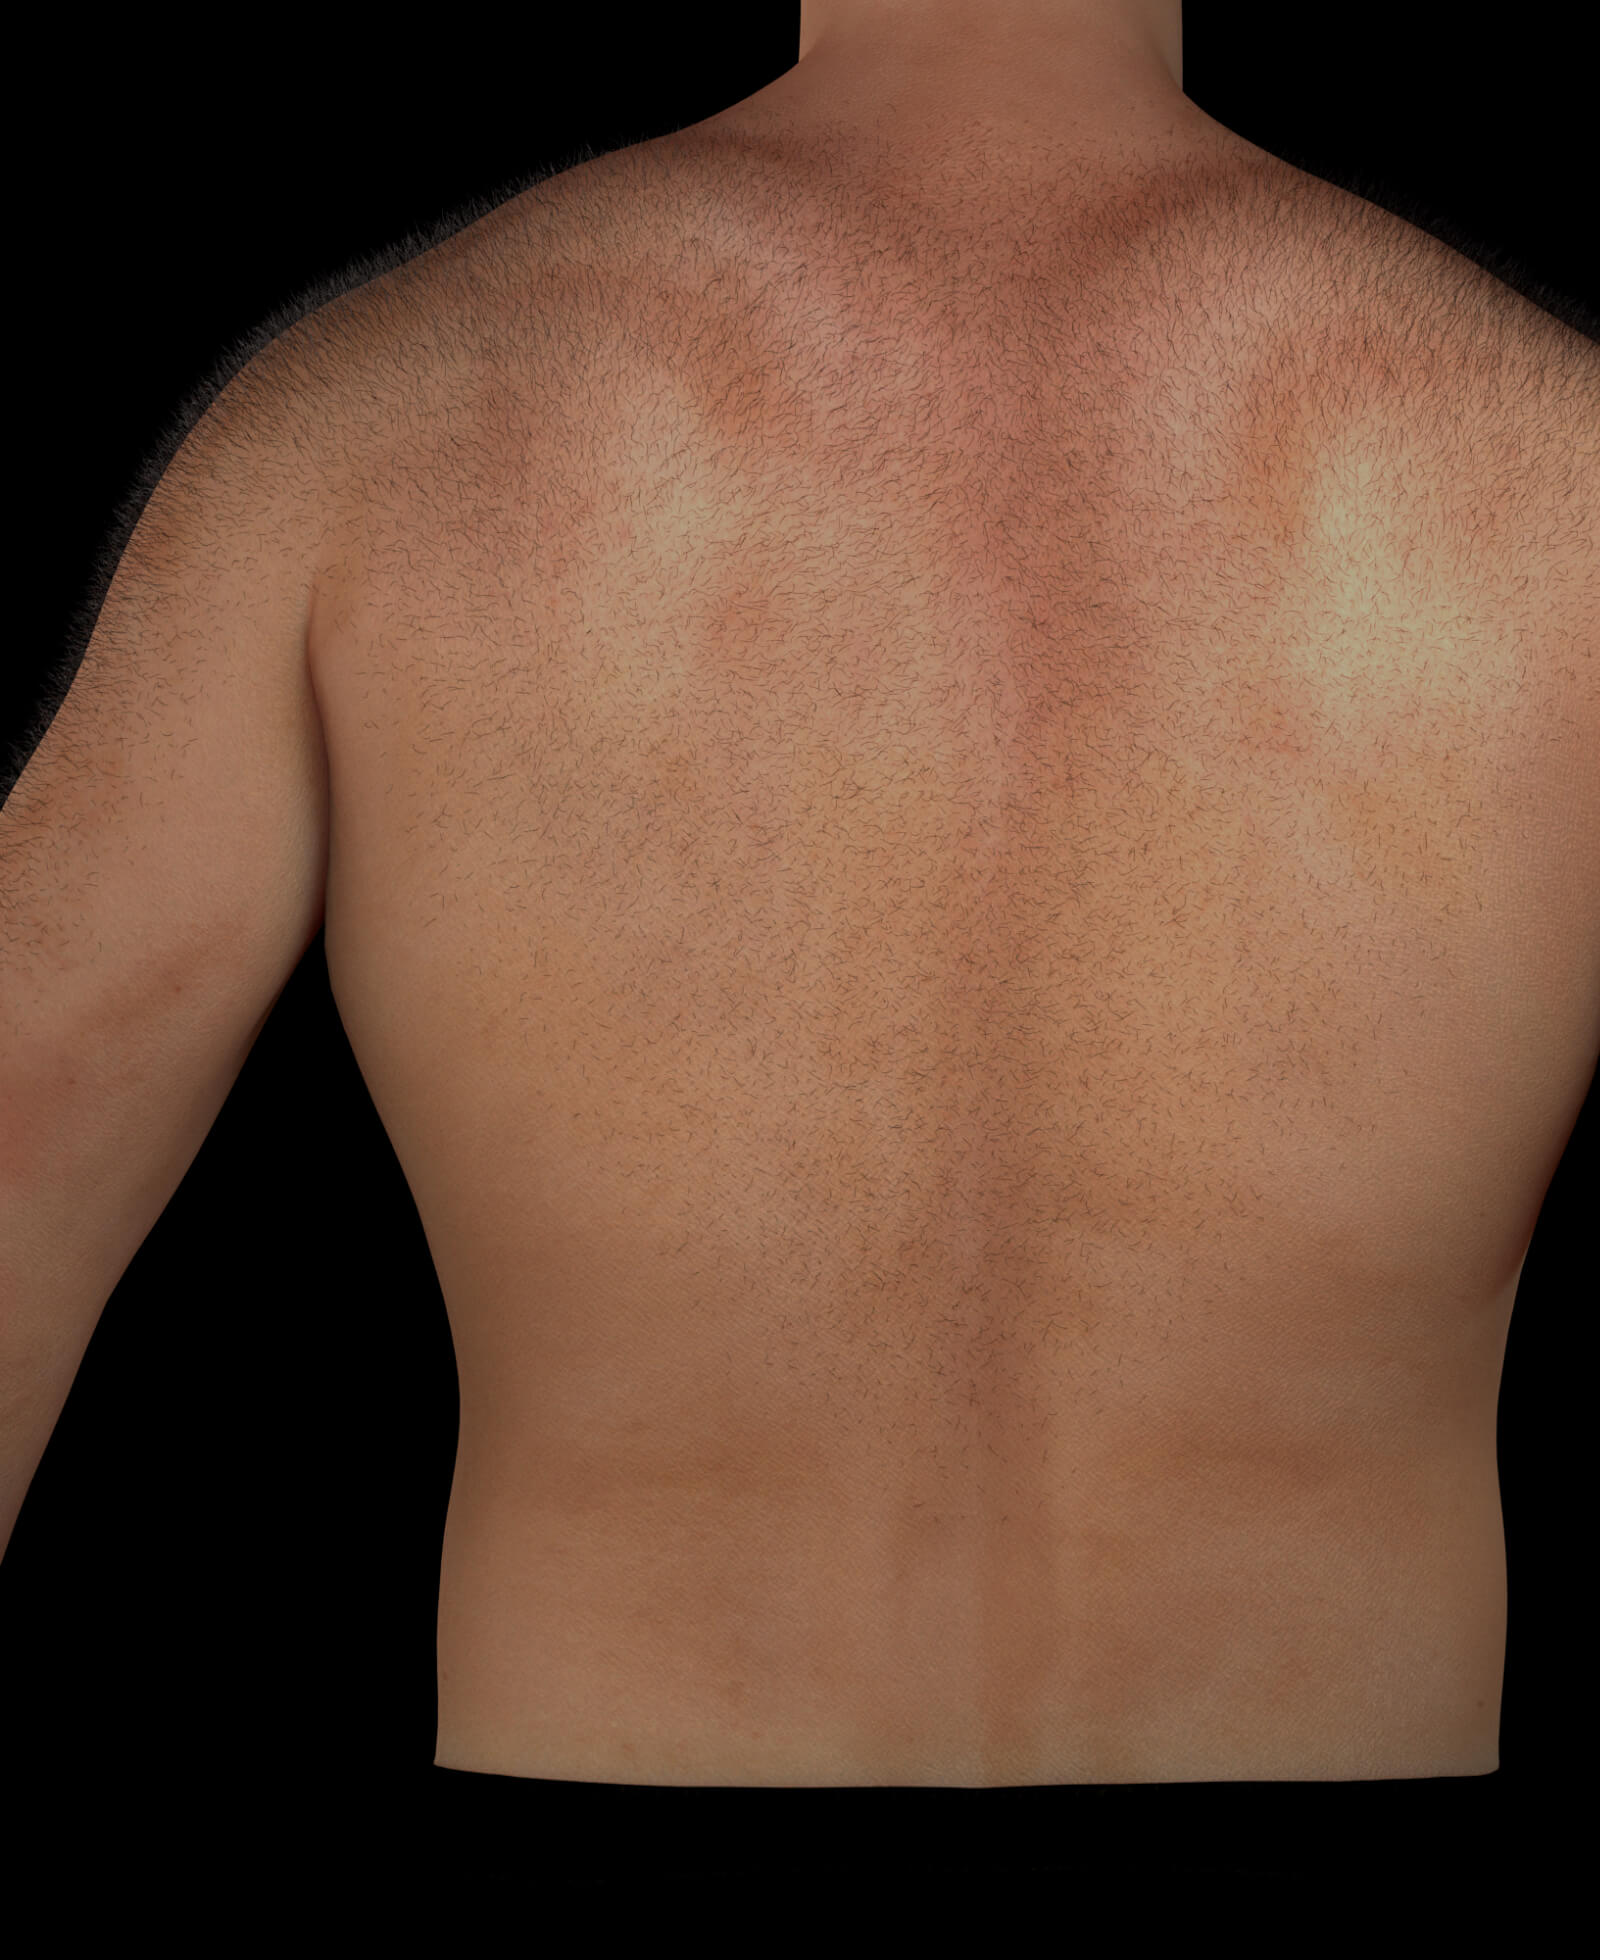 Male patient at Clinique Chloé with unwanted back hair looking for permanent hair removal